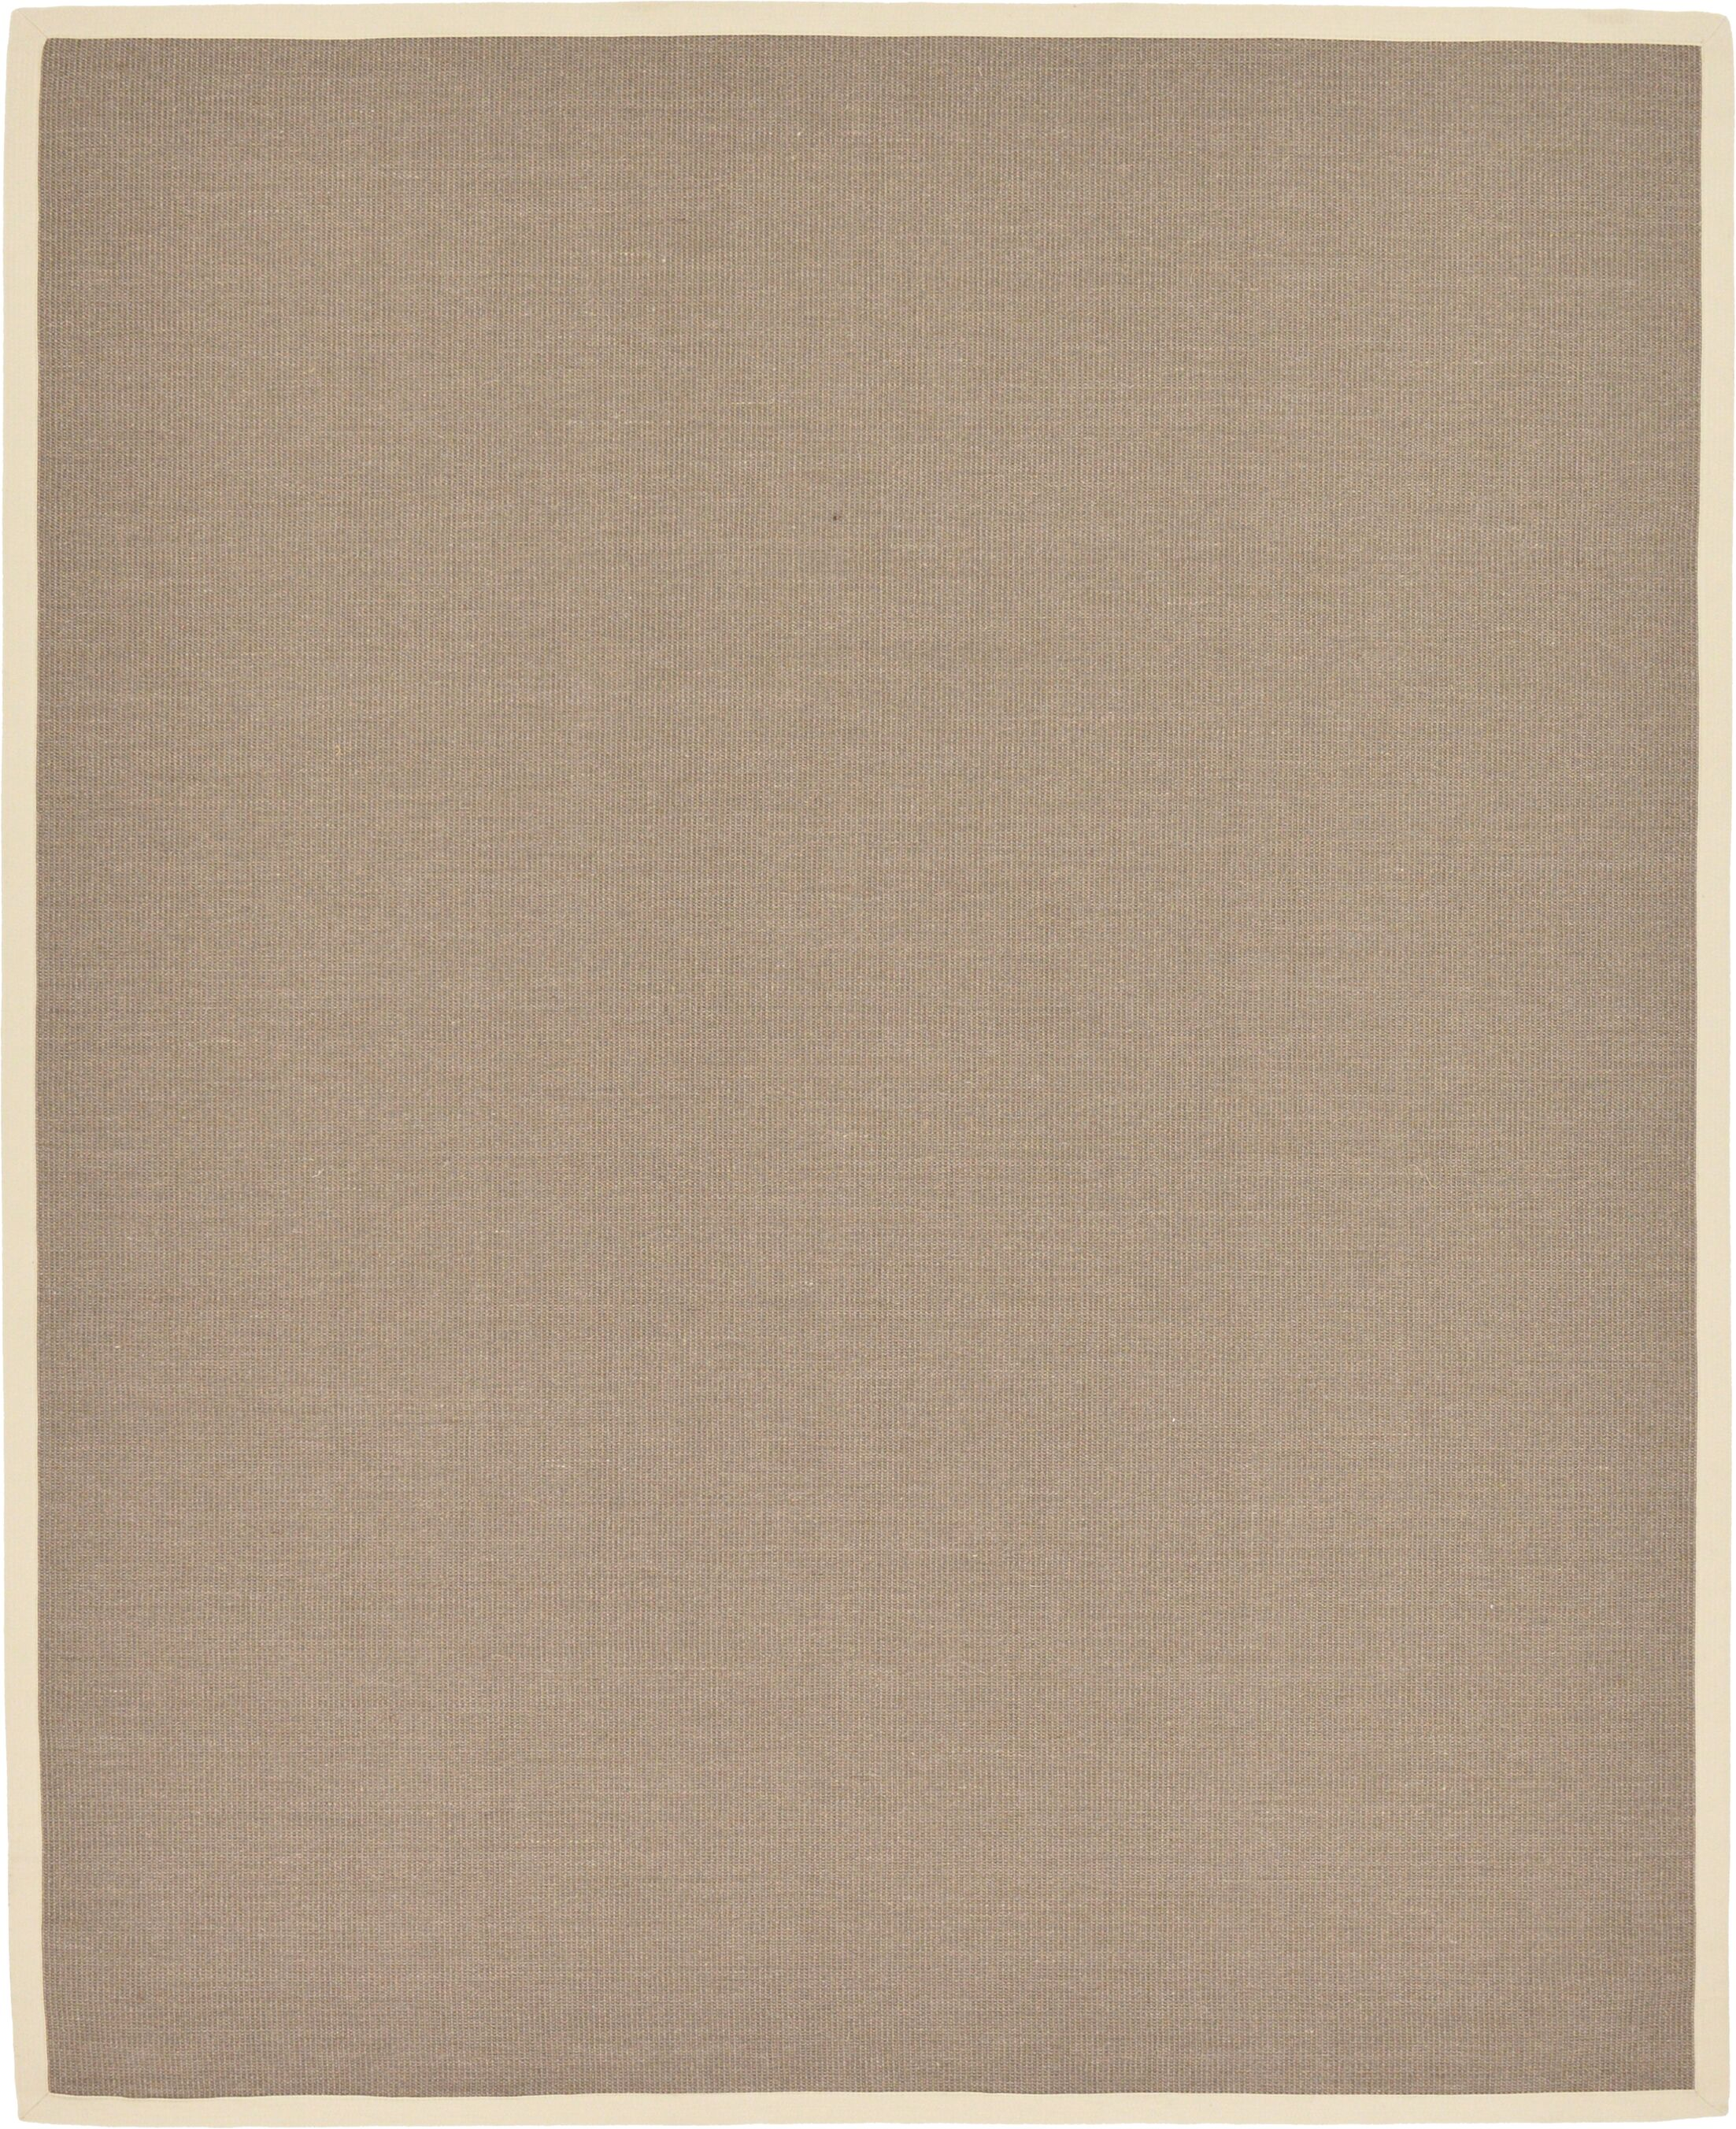 Westminster Taupe Outdoor Area Rug Rug Size: Rectangle 8' x 10'